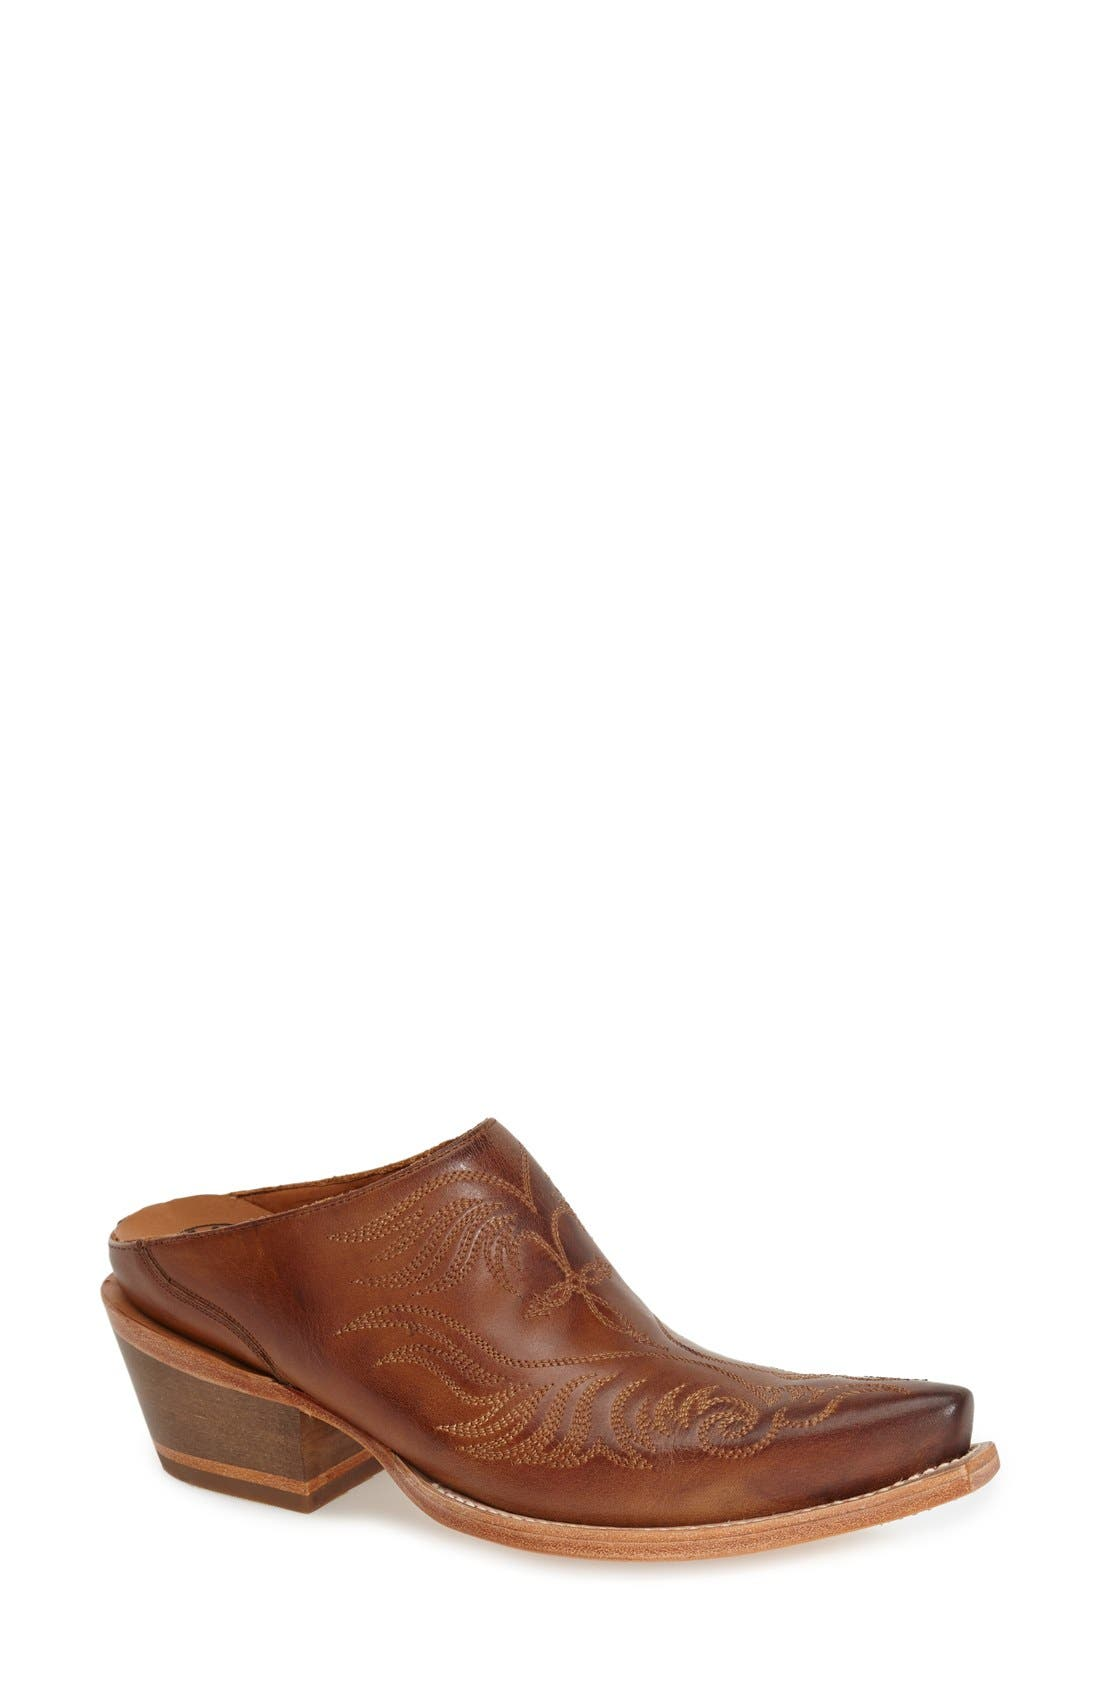 Alternate Image 1 Selected - Lucchese'Western' Mule (Women)